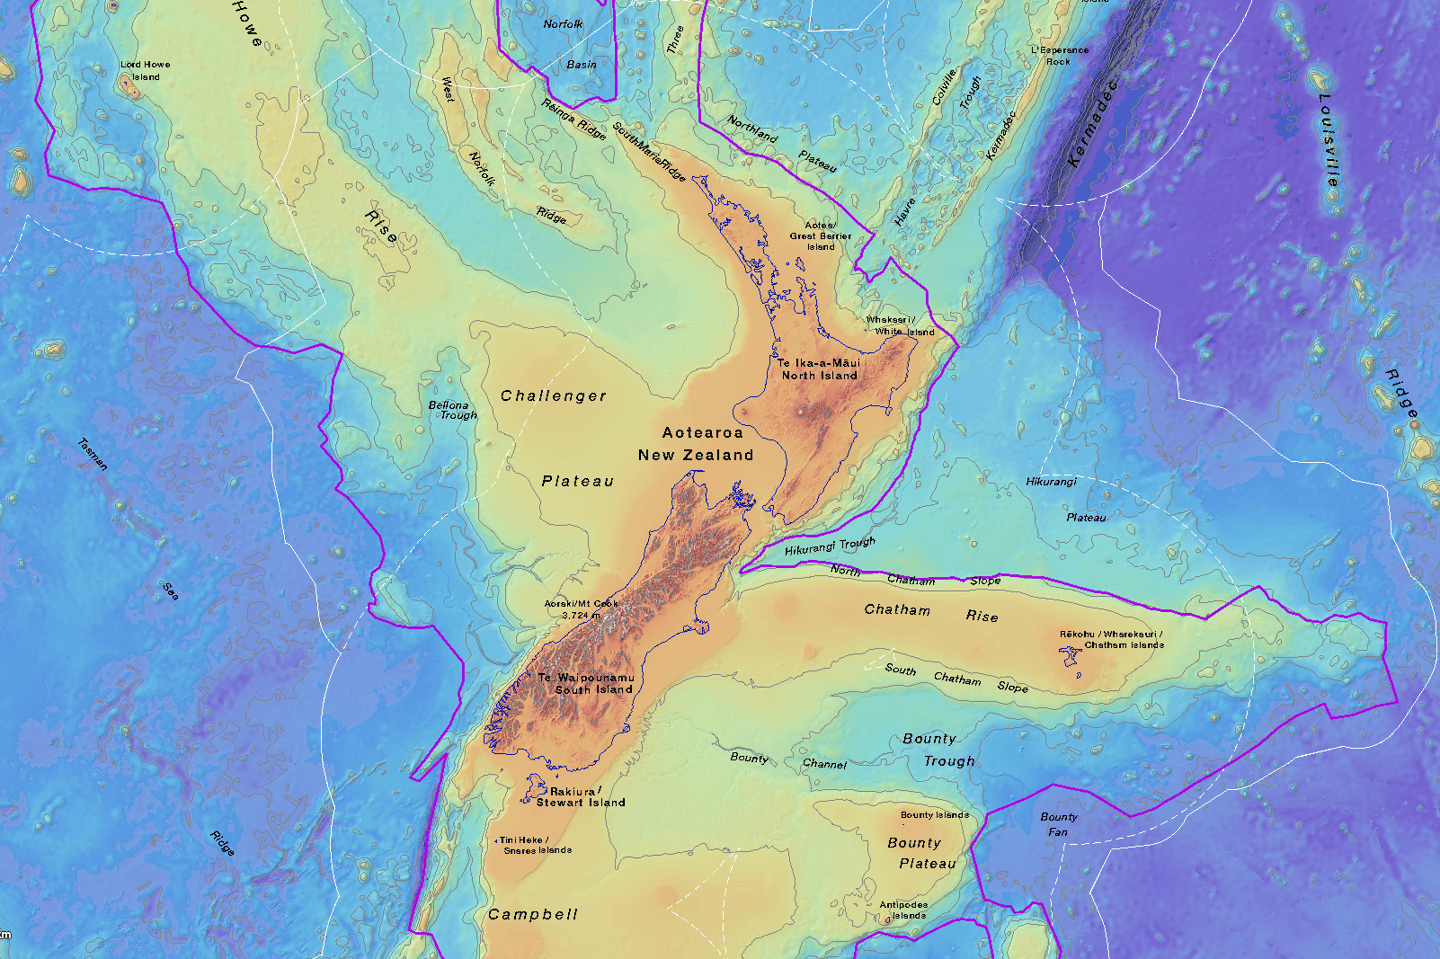 New maps and a new website let people explore the ancient sunken continent of Zealandia